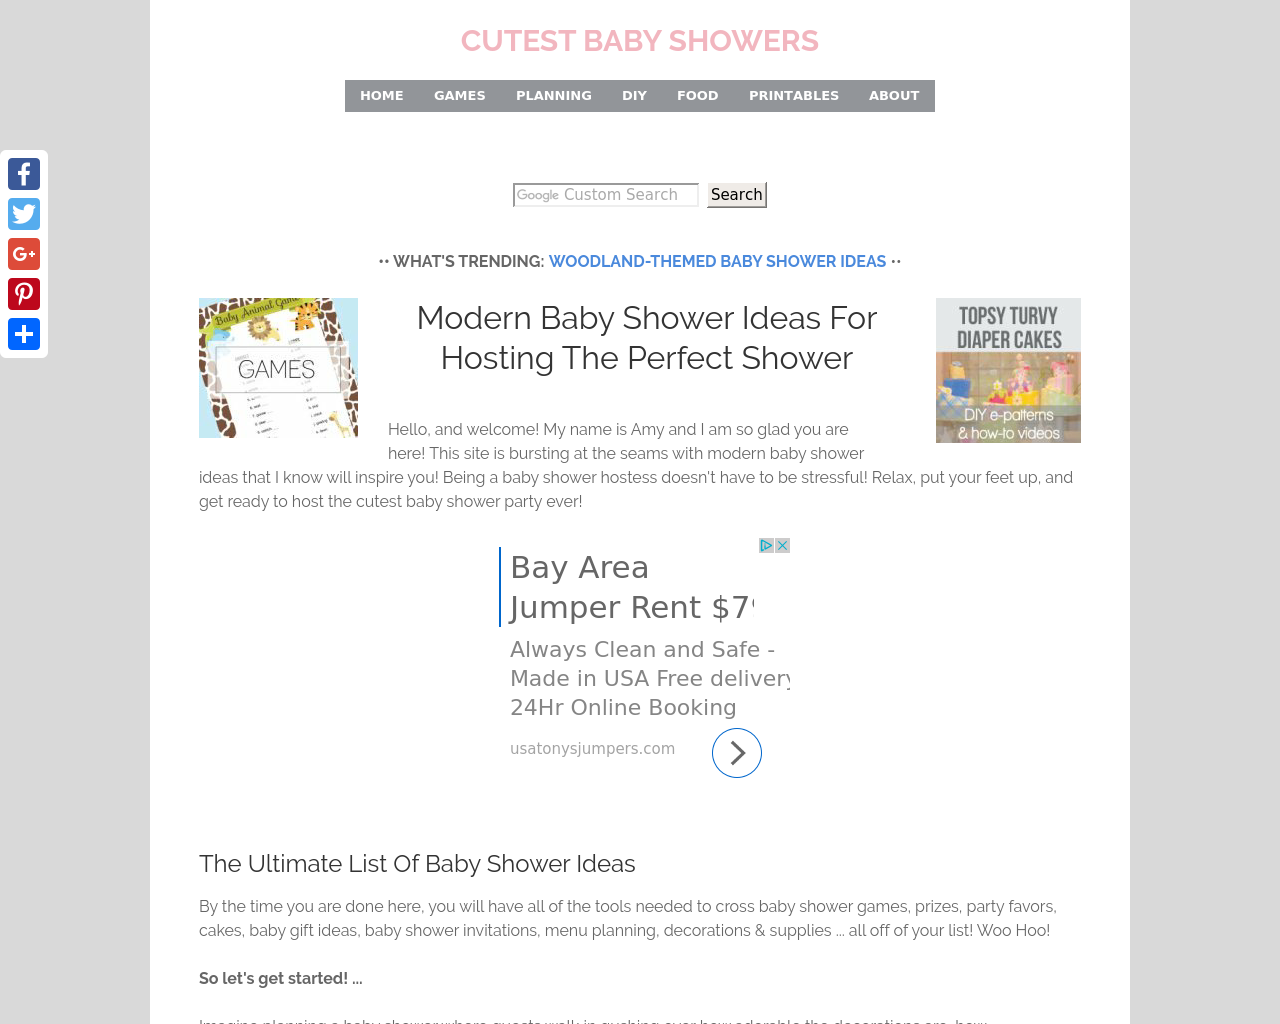 Cute-Baby-Showers-Advertising-Reviews-Pricing